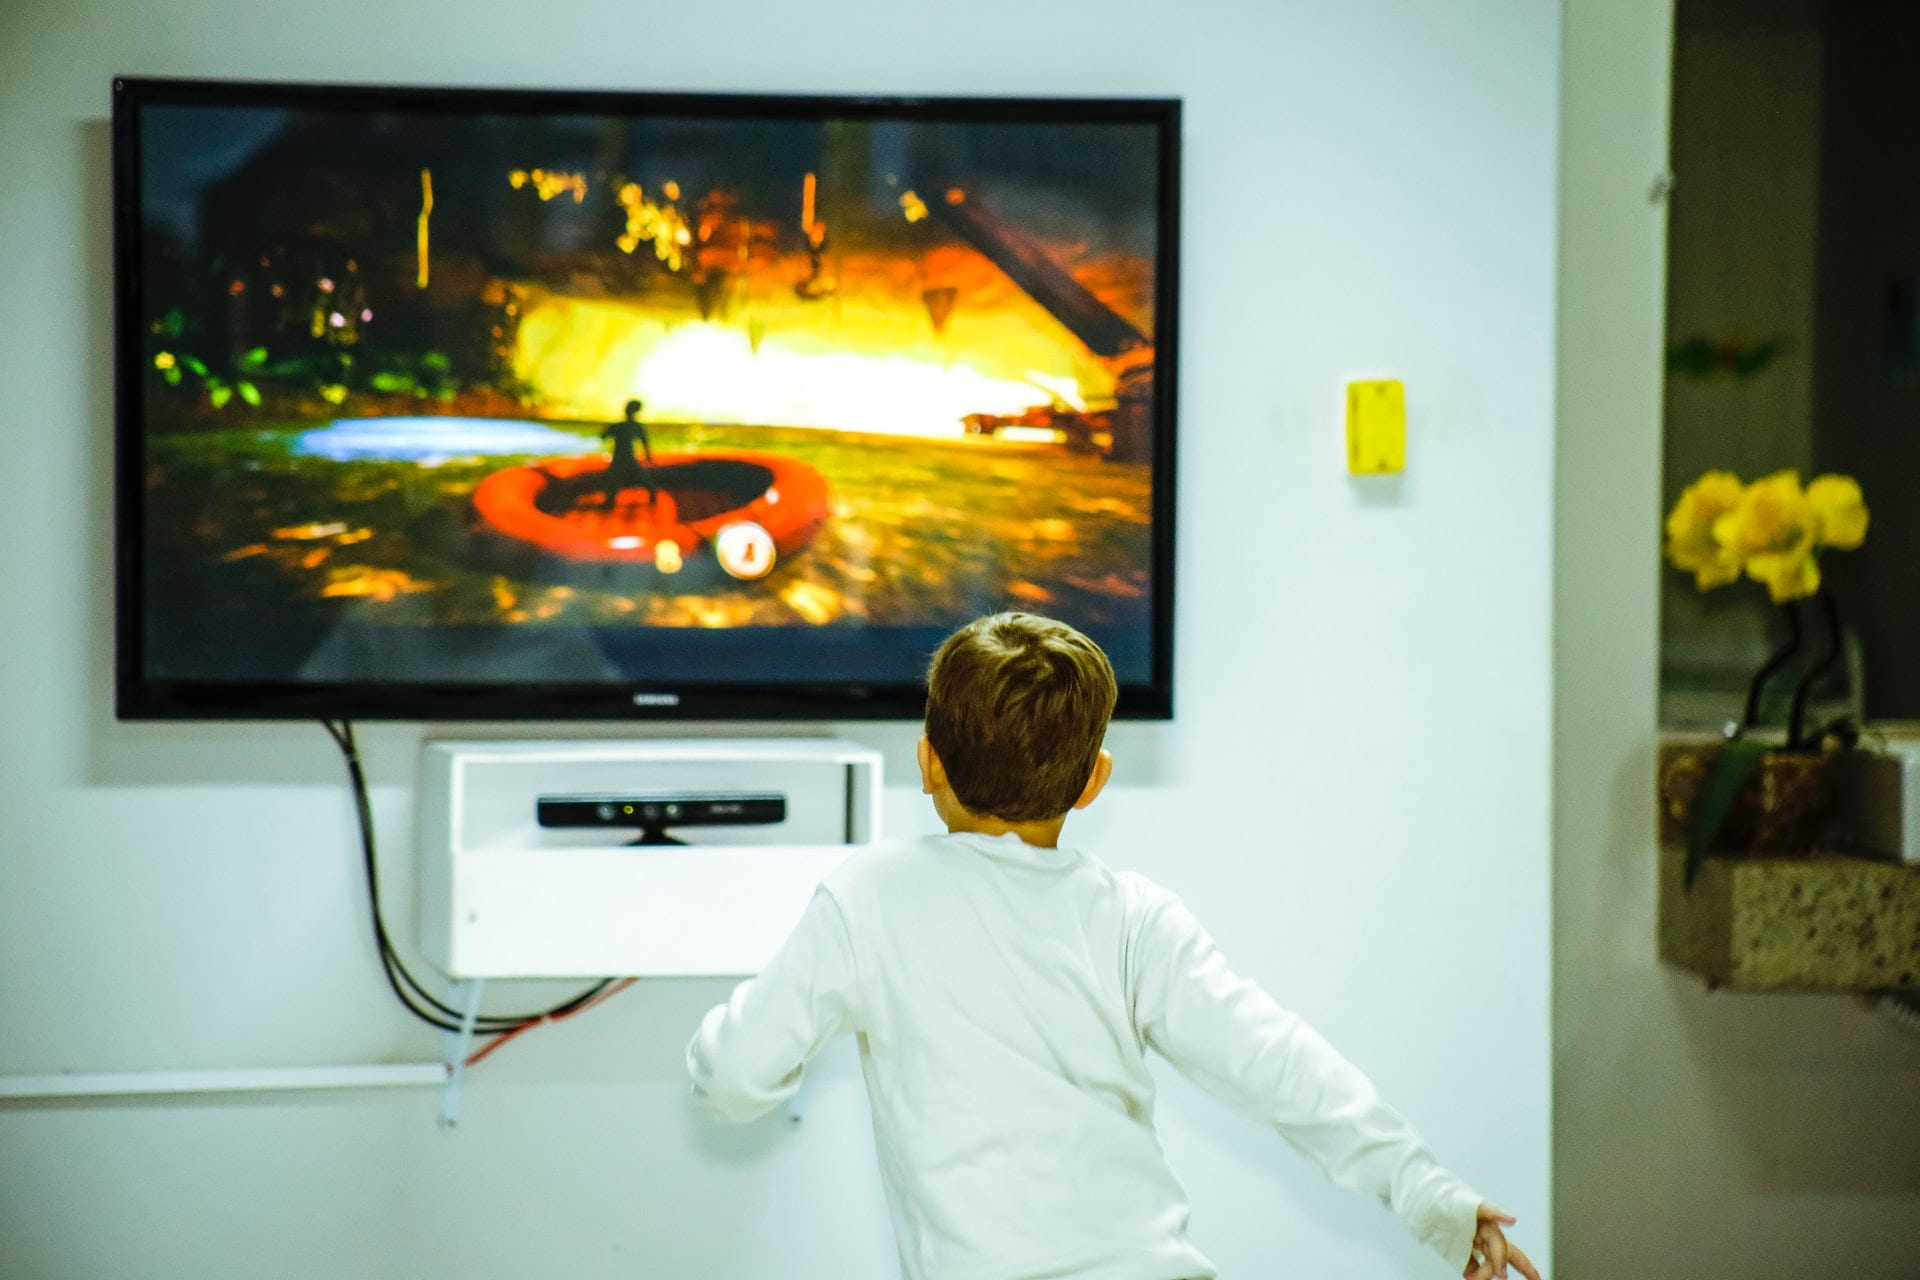 How Many Calories Do You Burn by Watching TV?